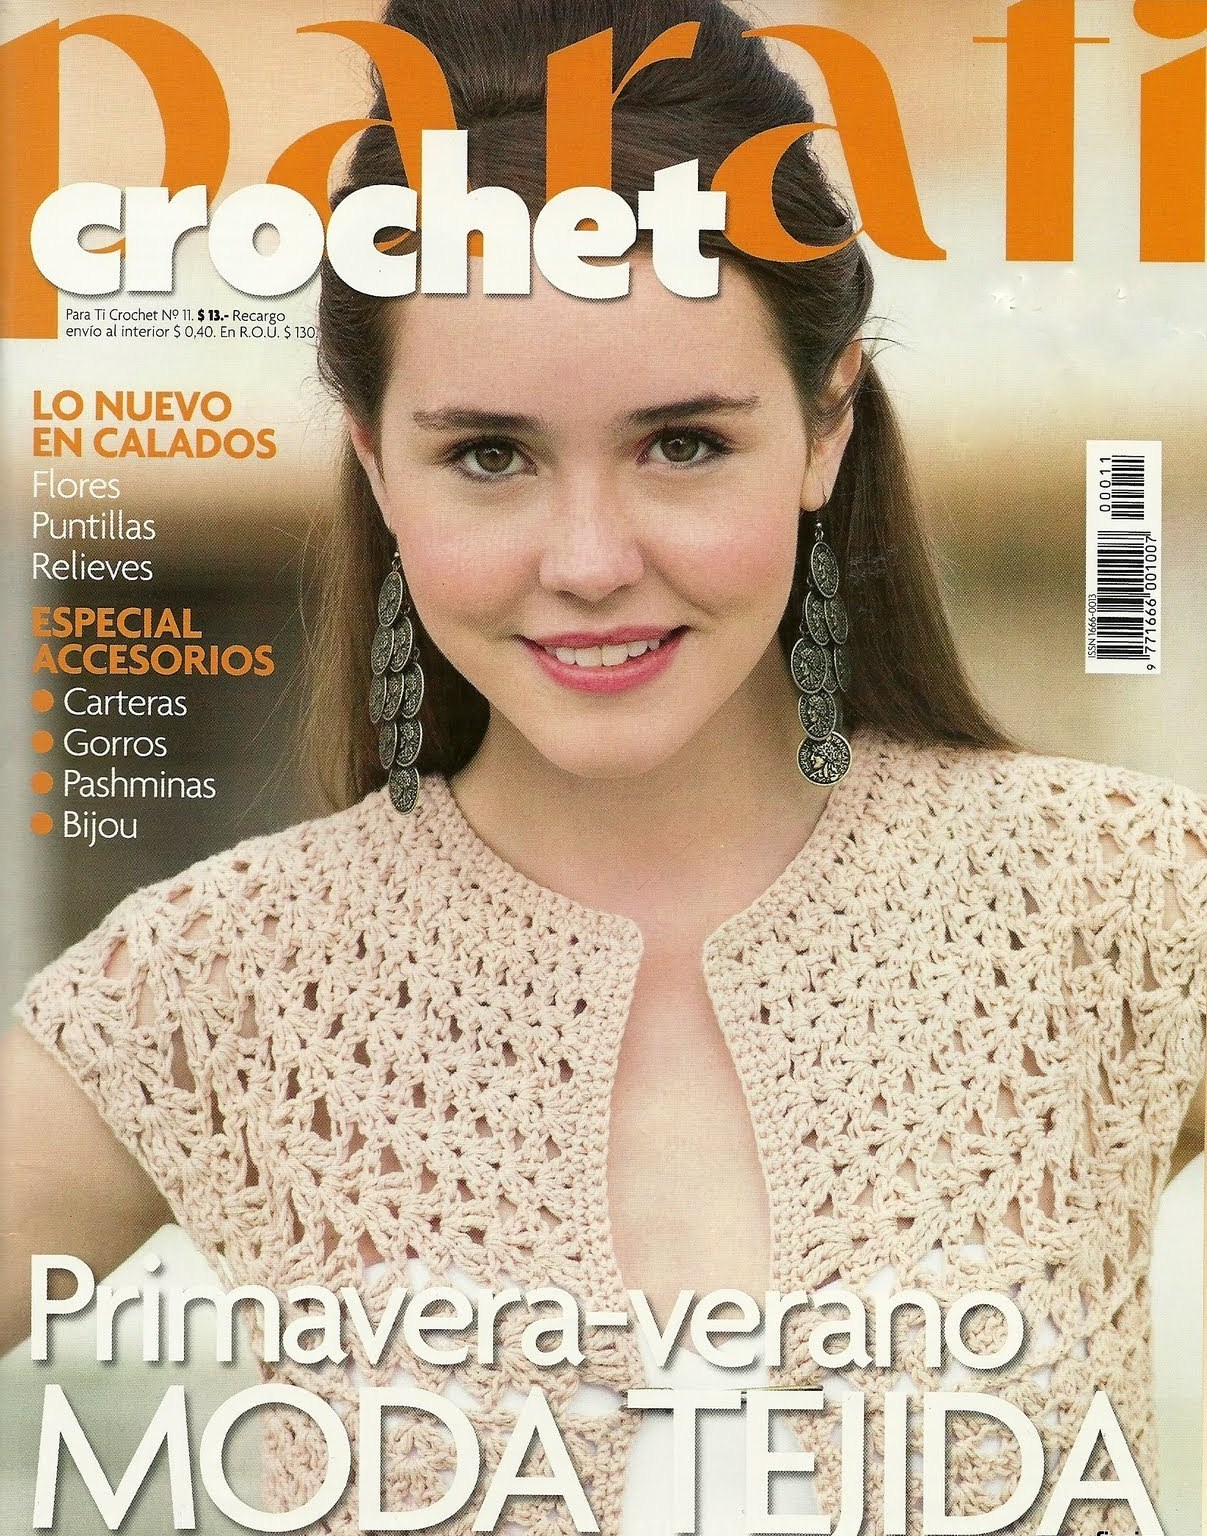 Crochet Magazine En Espanol : Revistas De Crochet En Espanol New Style for 2016-2017